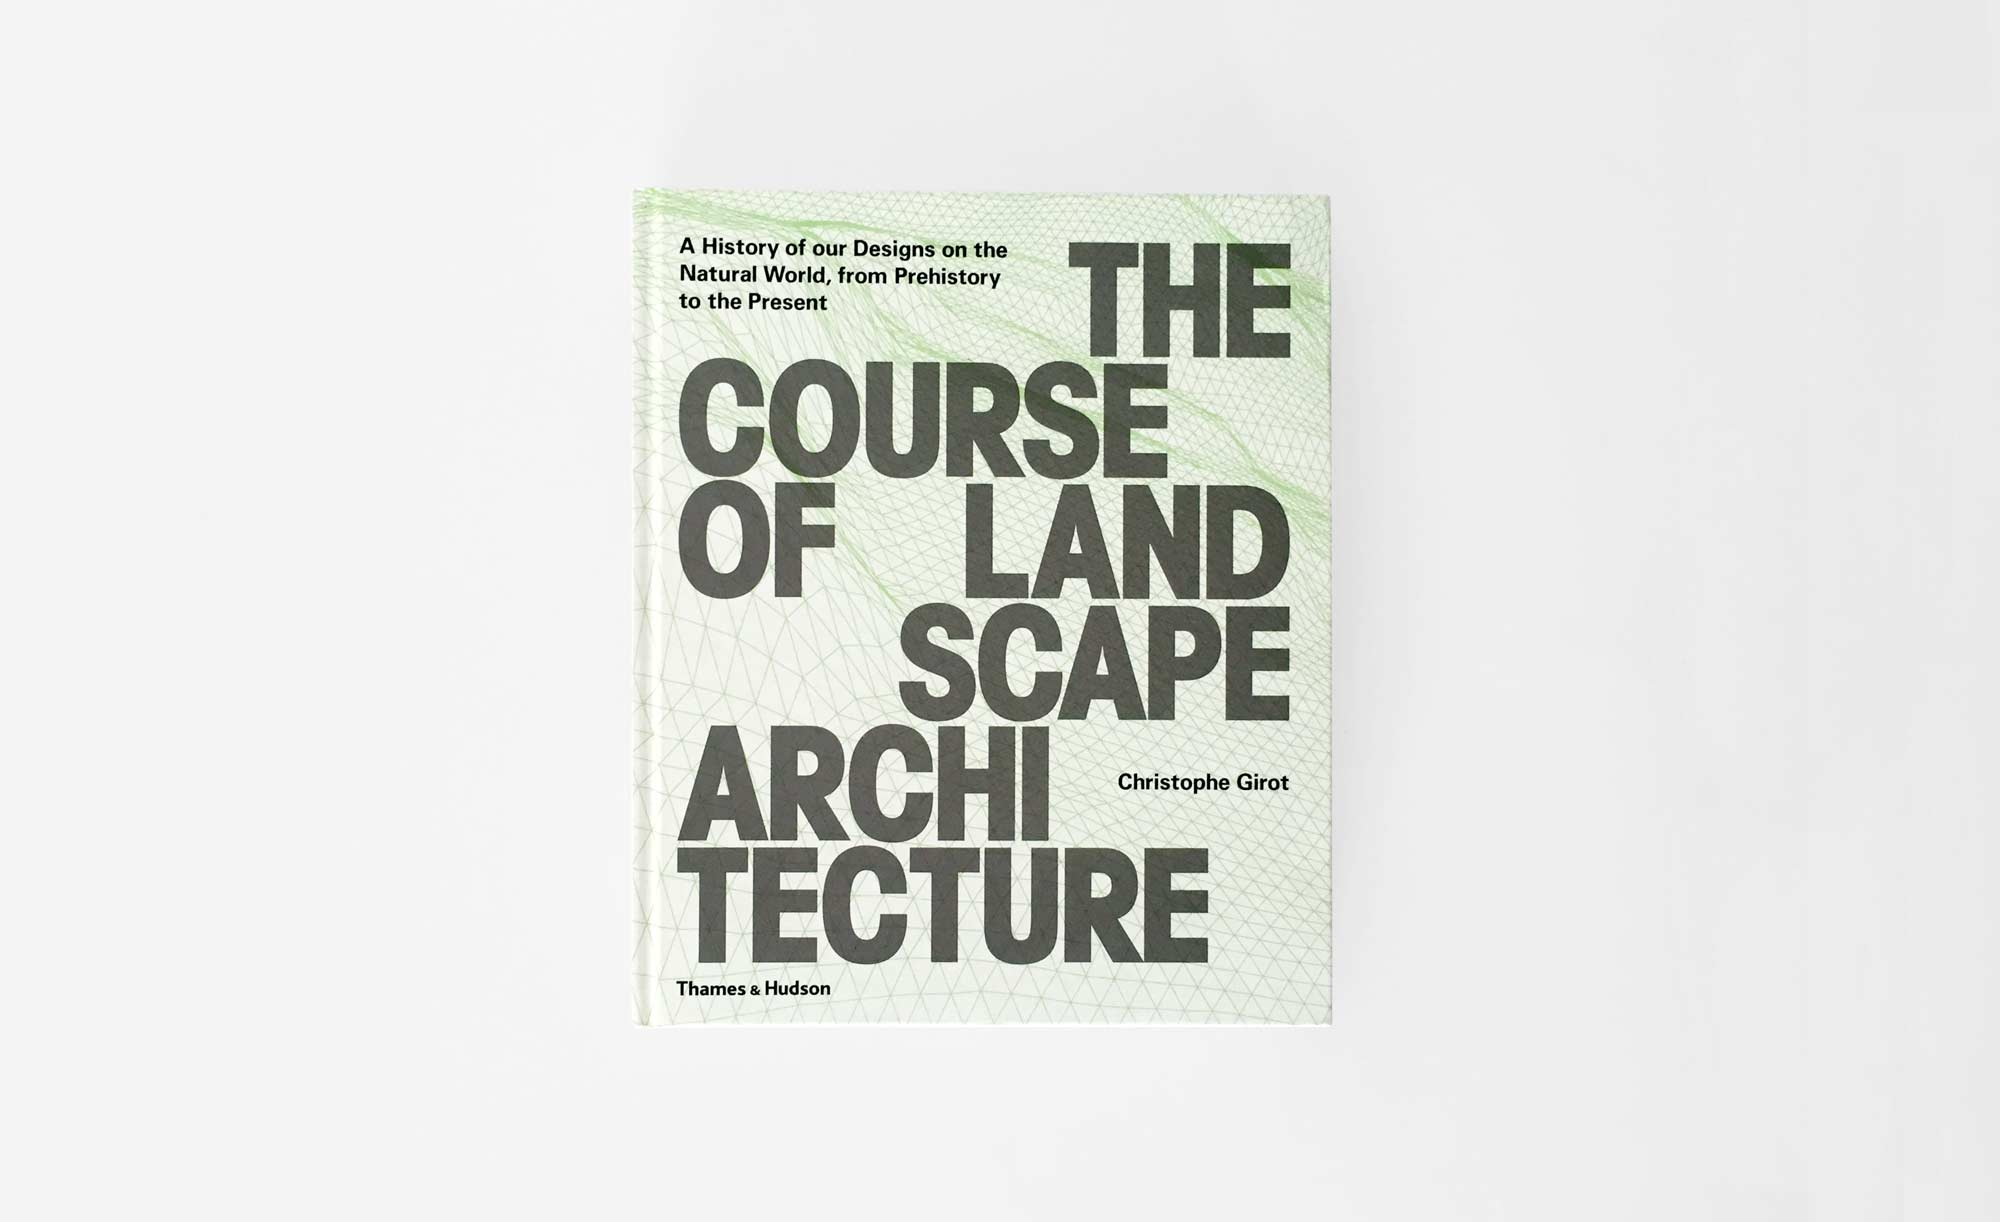 Girot's intent is to show that landscape architecture has a wider horizon and is broader in scope than the horizon of architecture. This is why he shows connections between various artefacts over the course of human culture ...